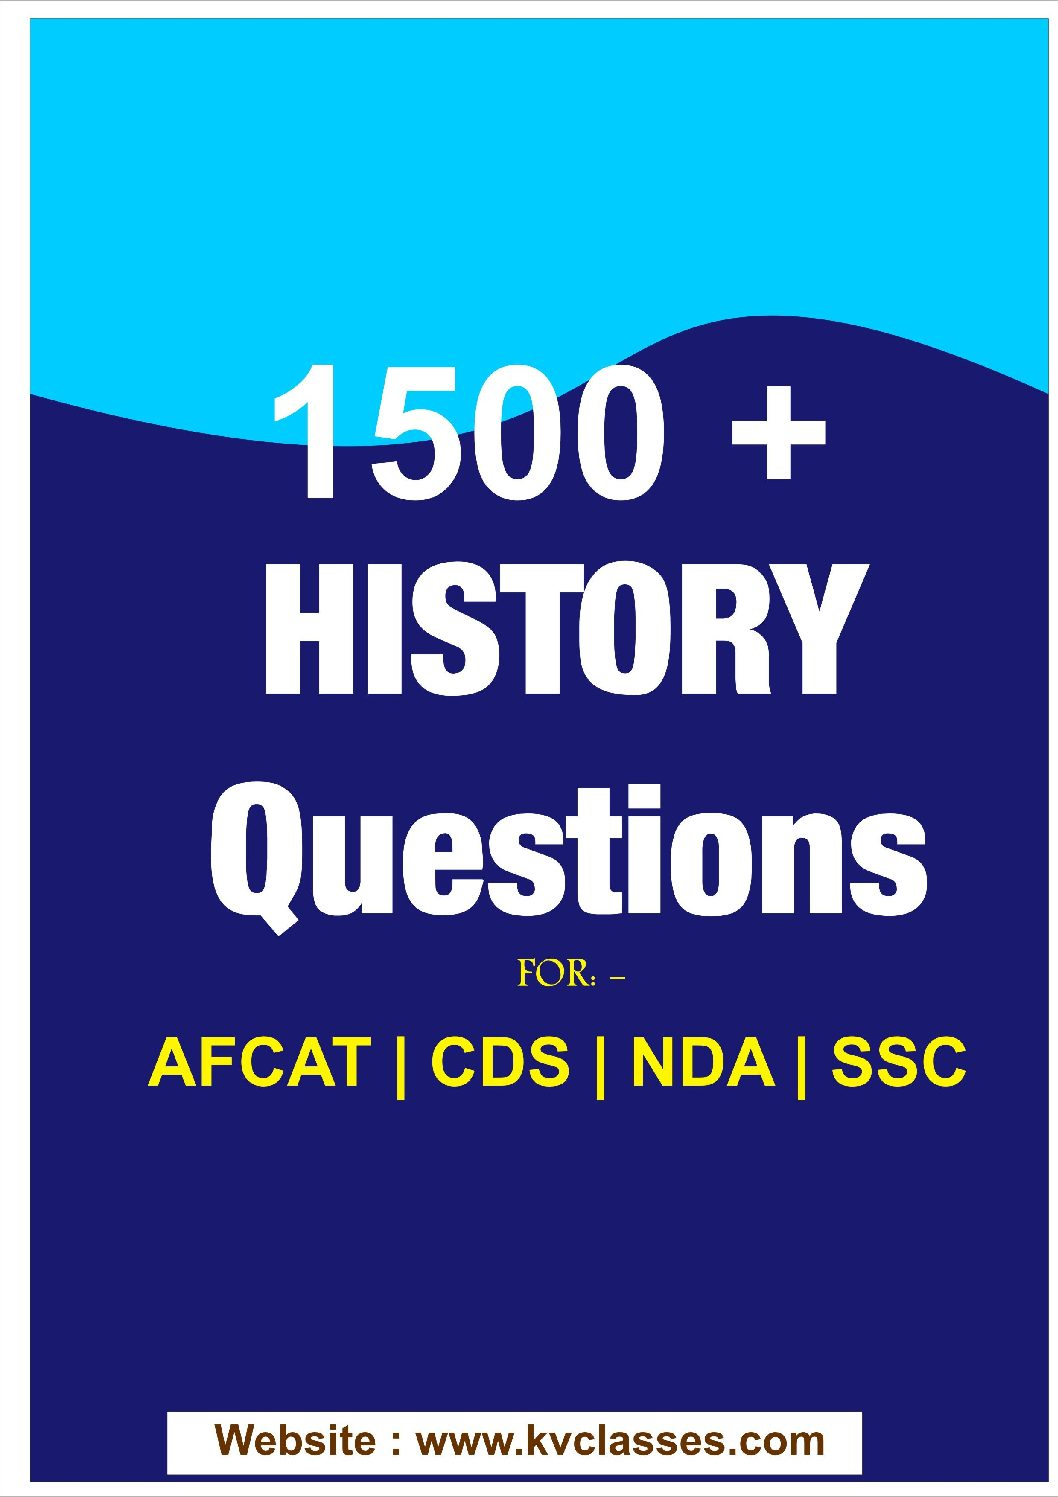 1500 History Questions Answers-For-CDS-AFCAT-NDA-TA-1,SSC PDF download